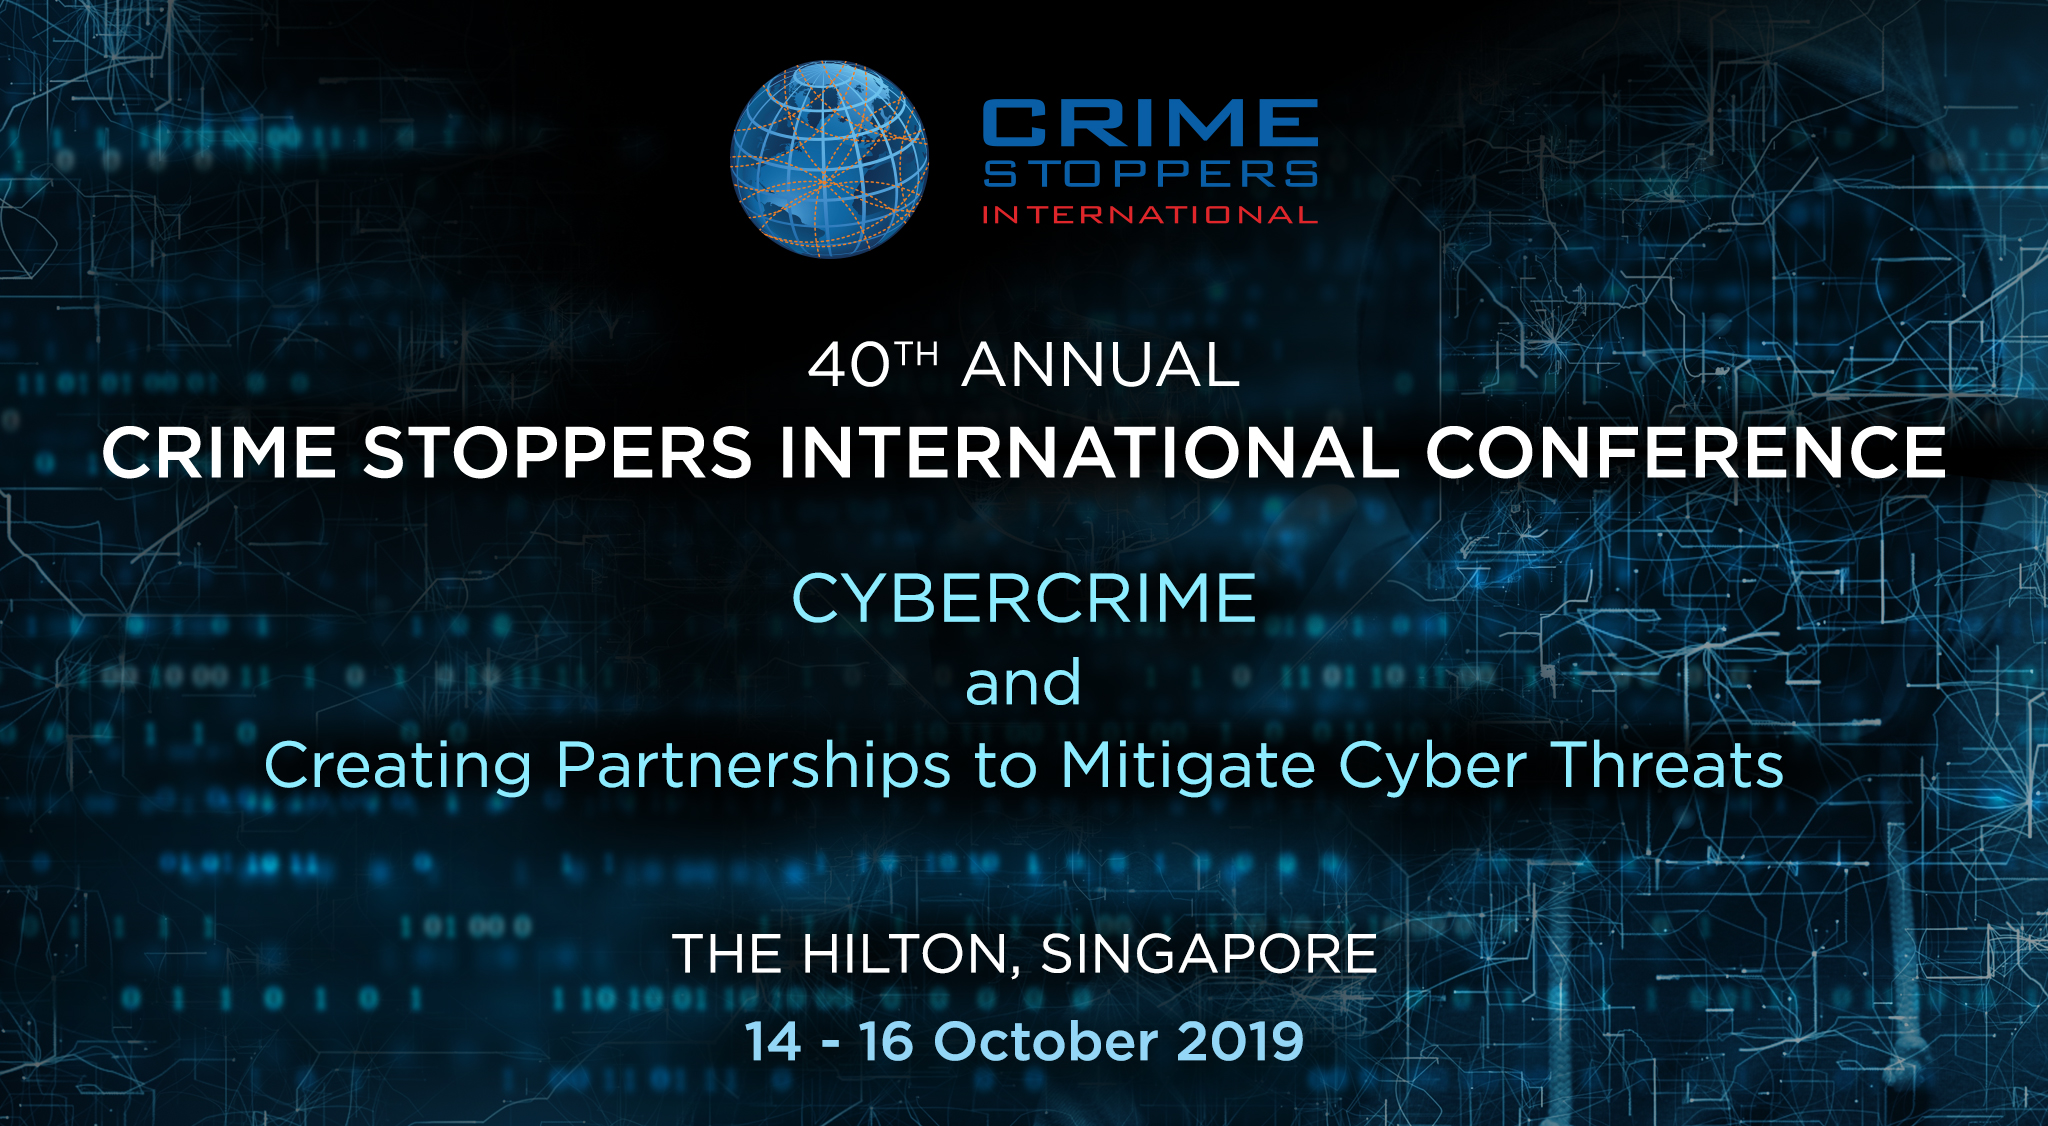 Cyber Expert Paul Dwyer will speak at the CSI conference